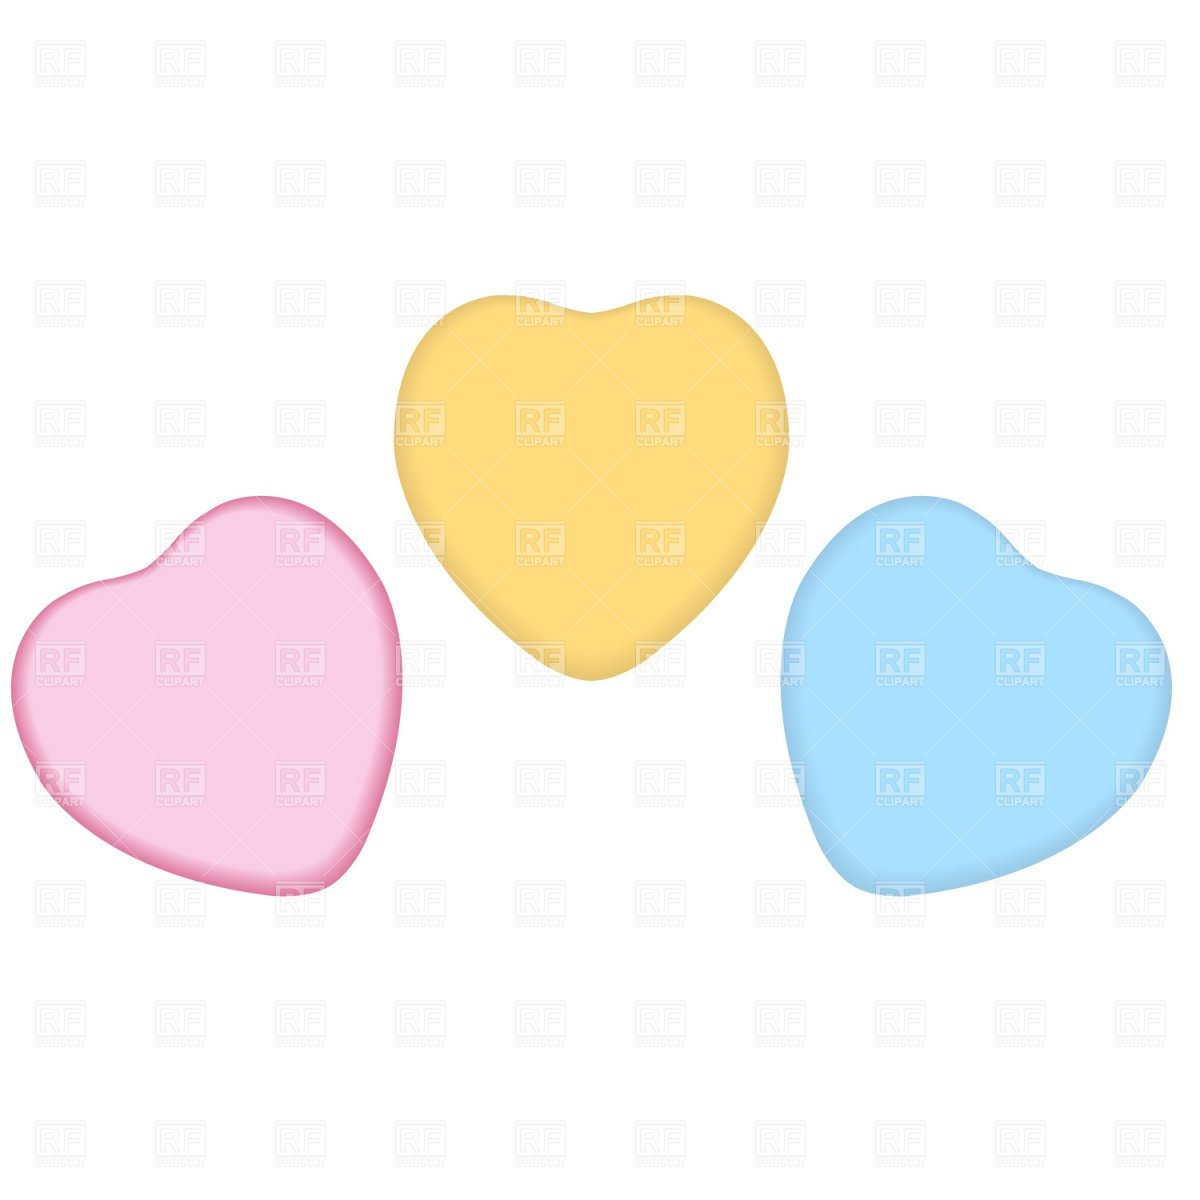 1200x1200 Candy Heart Vector Image Vector Artwork Of Food And Beverages